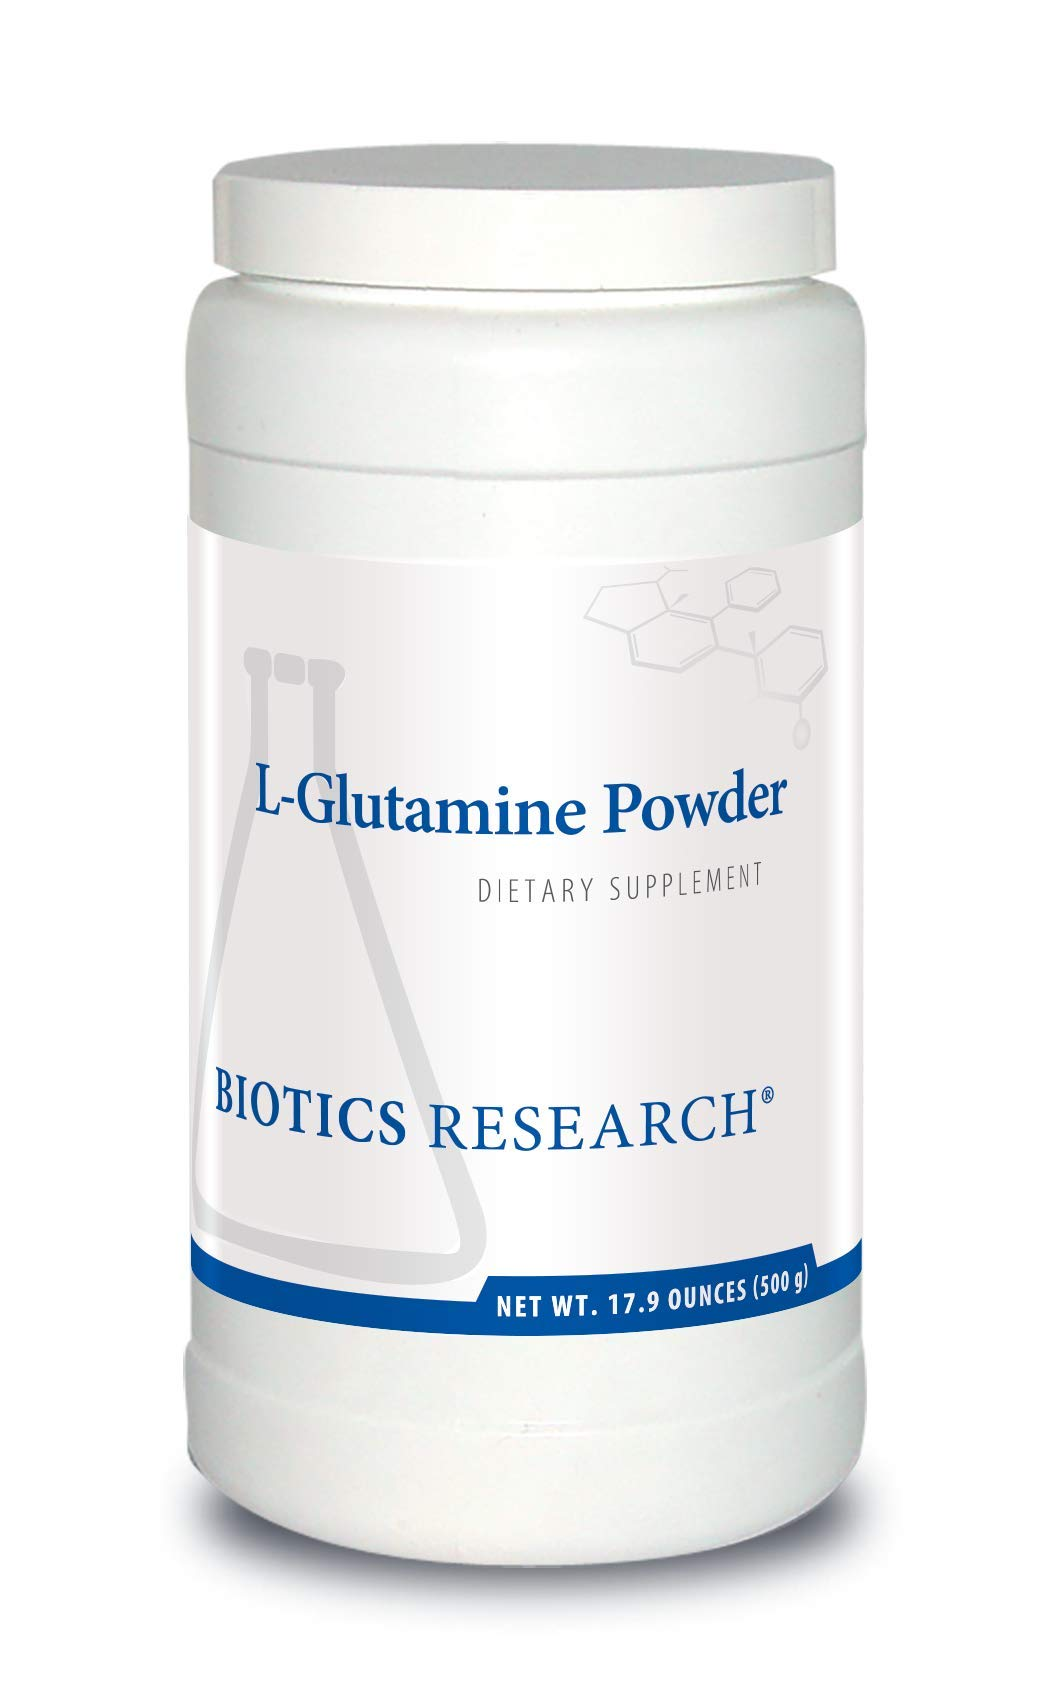 Biotics Research L-Glutamine Powder - Powdered Formula, 3 g/Serving, Gastrointestinal Health, Gut Lining Support, Muscle Repair, Lean Muscle, Antioxidant Activity. 17.9 Ounces (500g)(166 Servings) by BIOTICS